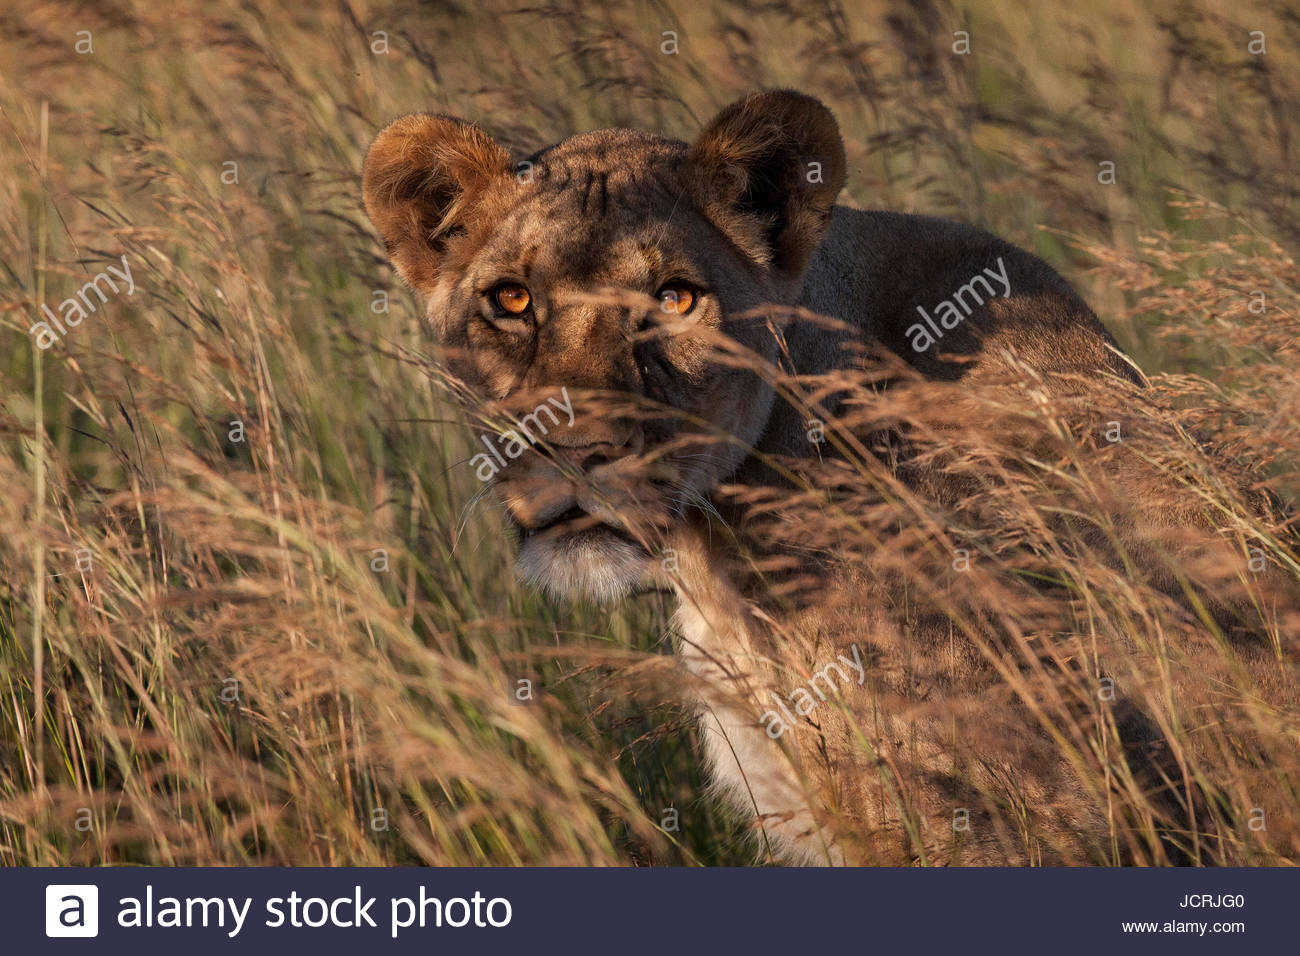 An adult lioness peering through the tall grass. - Stock Image